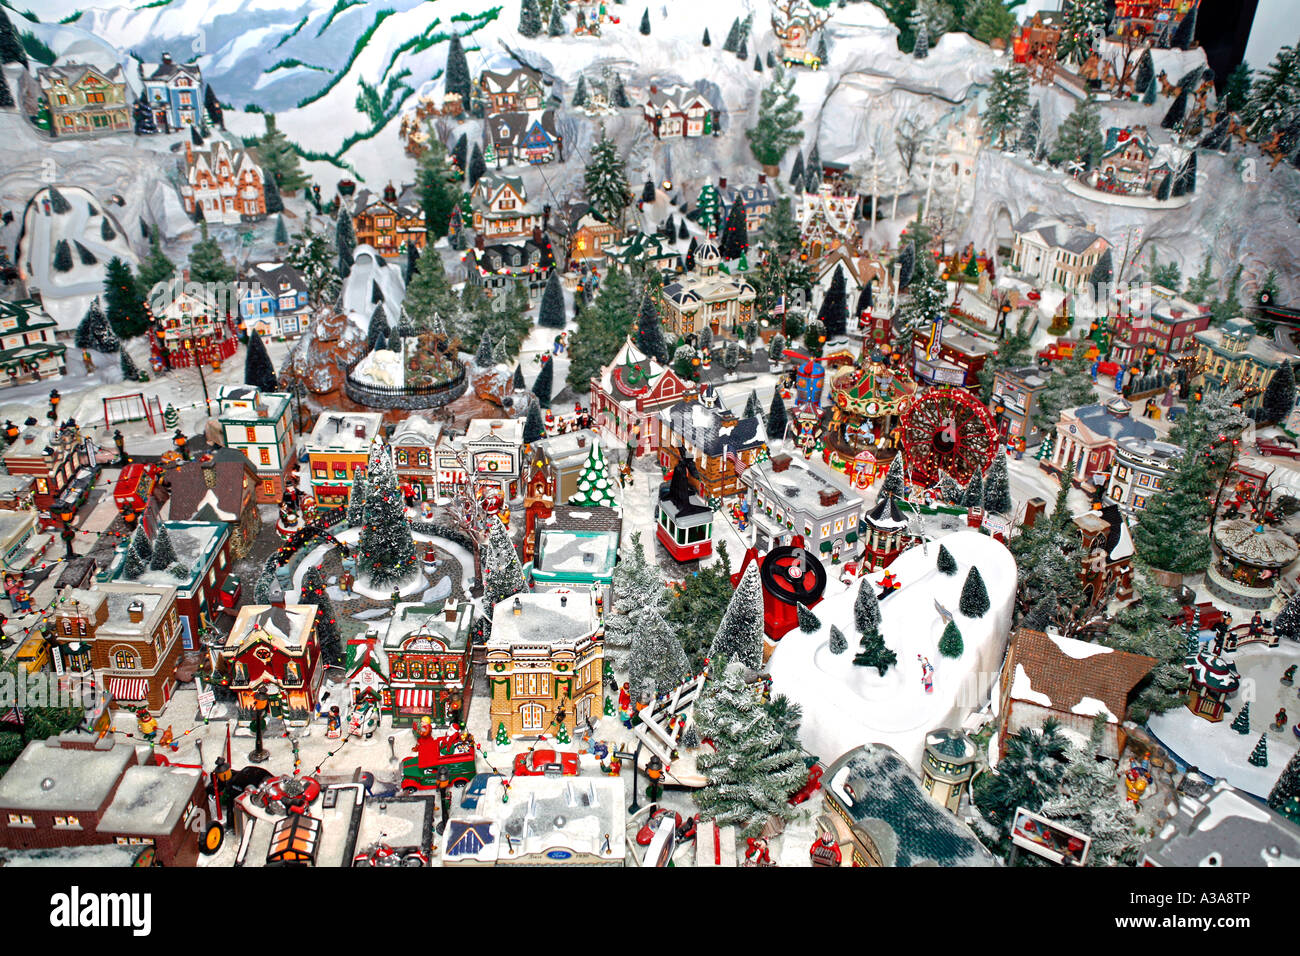 Christmas Village Display.Christmas Village Display Stock Photo 10721829 Alamy